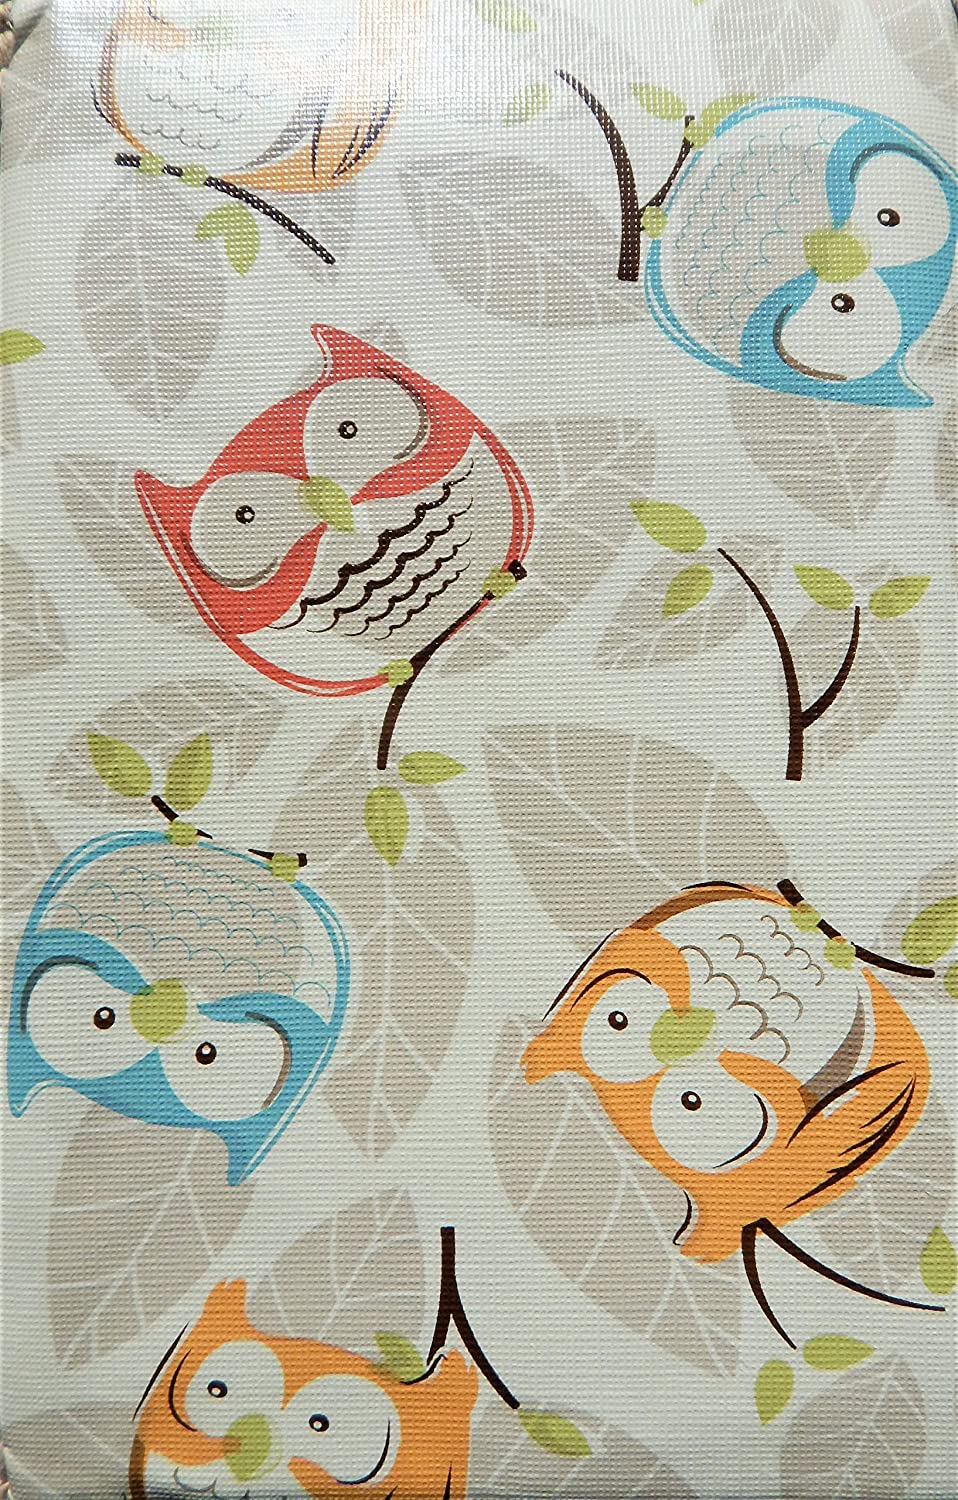 "Crabtree Collection Vinyl Tablecloth: Indoor/Outdoor Dining Flannel Backed Table Cover| Home, Restaurant, Party Tablecloth| Easy To Clean & Sturdy| Picnic, Bbq, Holiday Owl Print Tablecloth (60""x102"")"